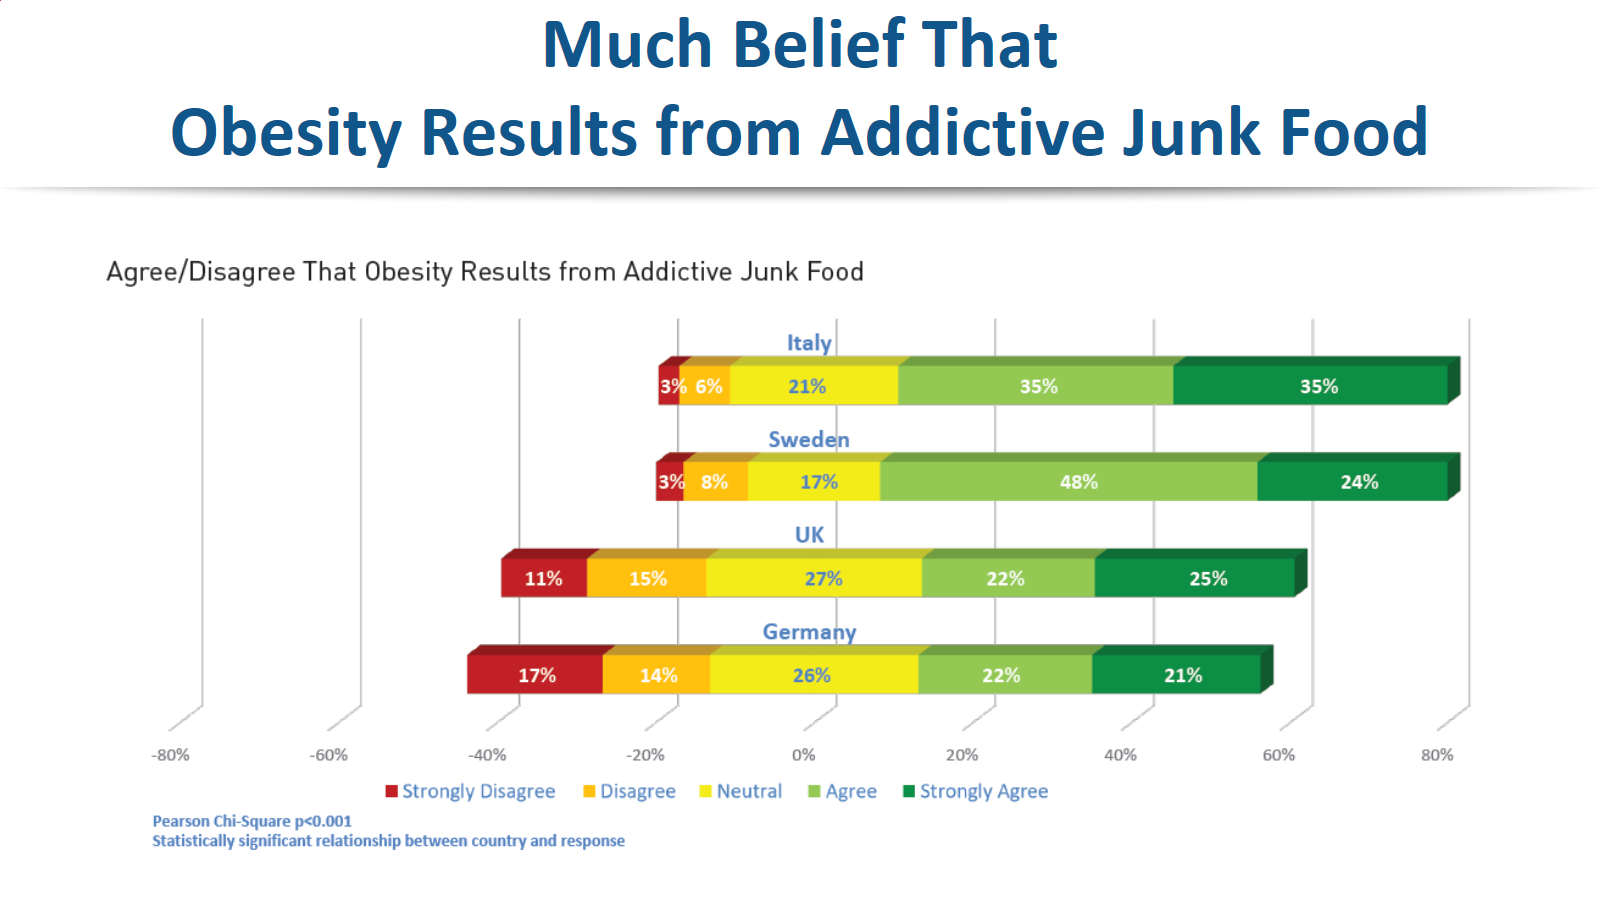 Much Belief that Obesity Results from Addictive Junk Food (Europe)